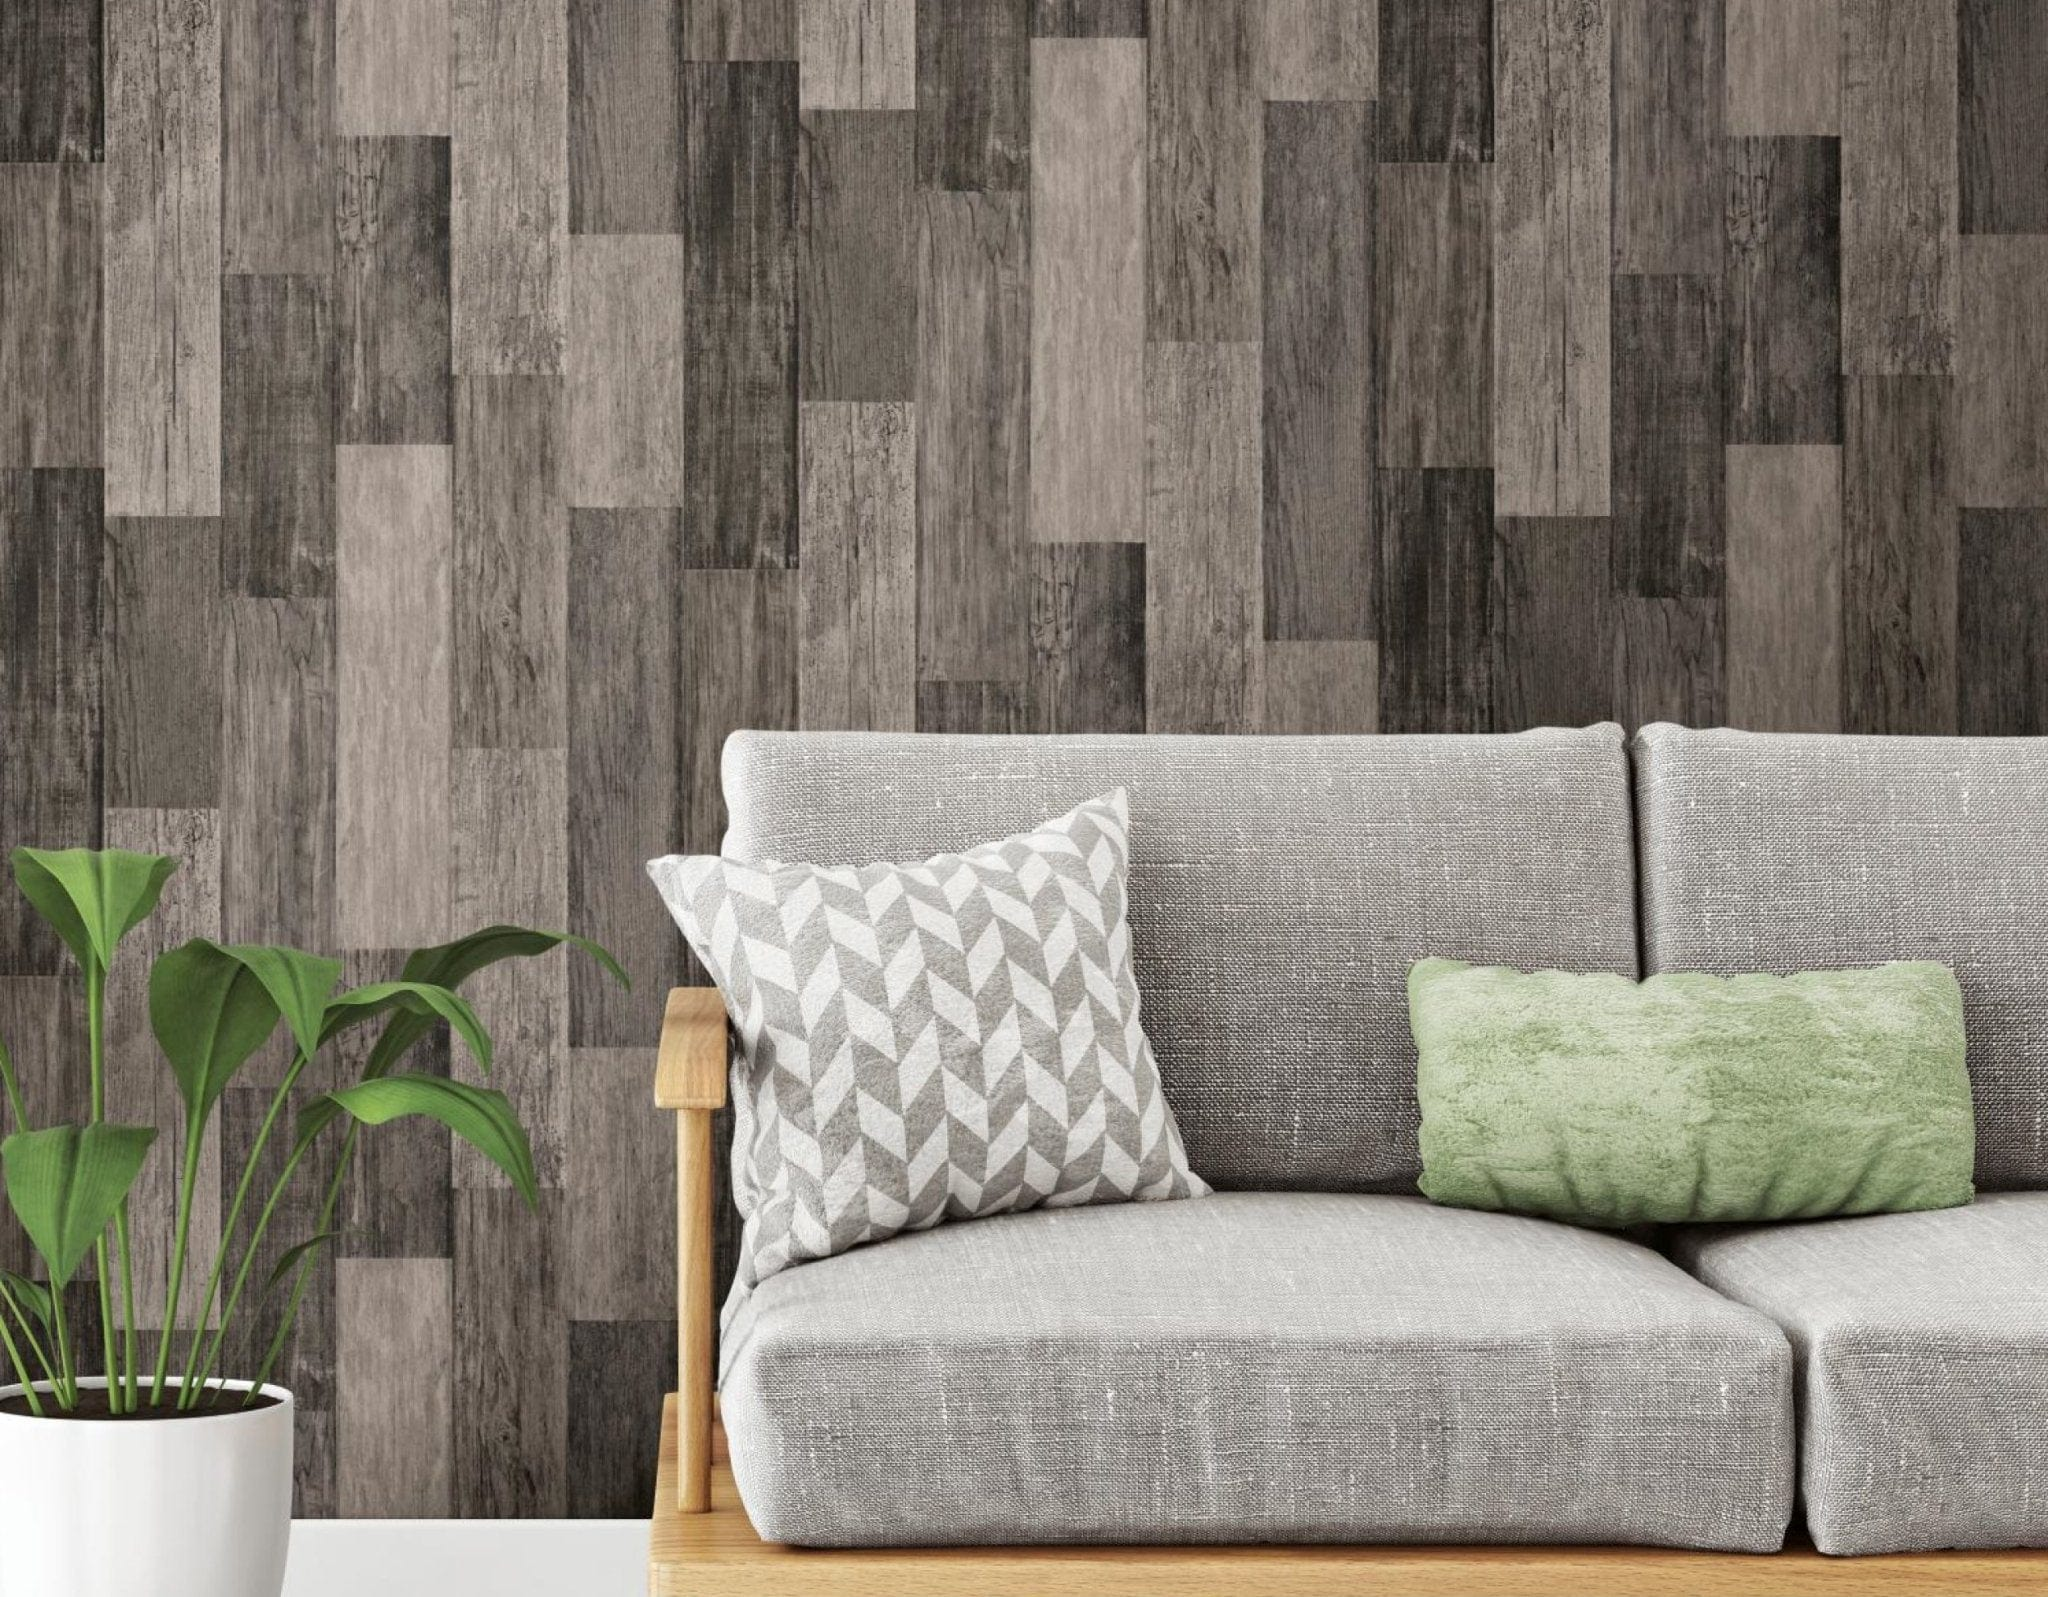 Wallplanks Wallpaper - Weathered Black Wood Plank Peel and Stick Wallpaper Sample - Wallplanks